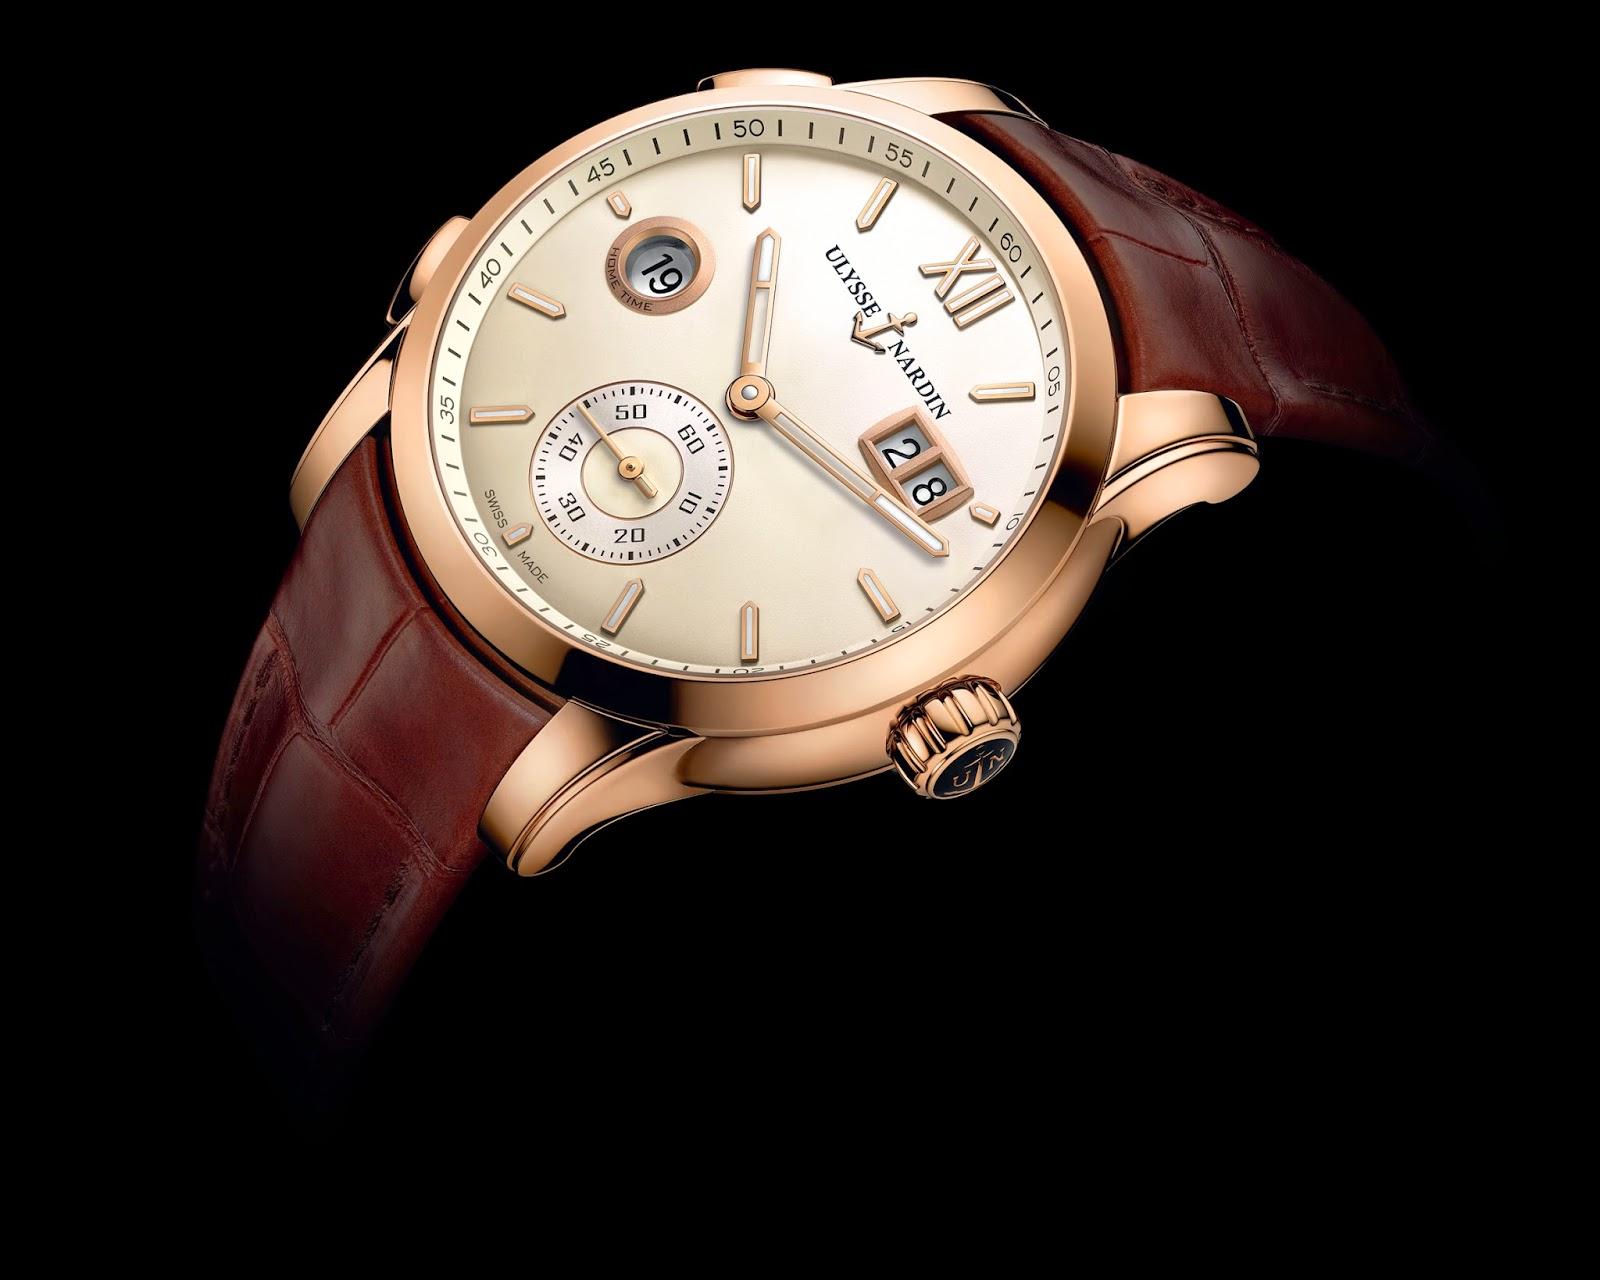 Ullysse Nardin Dual Time Manufacture4